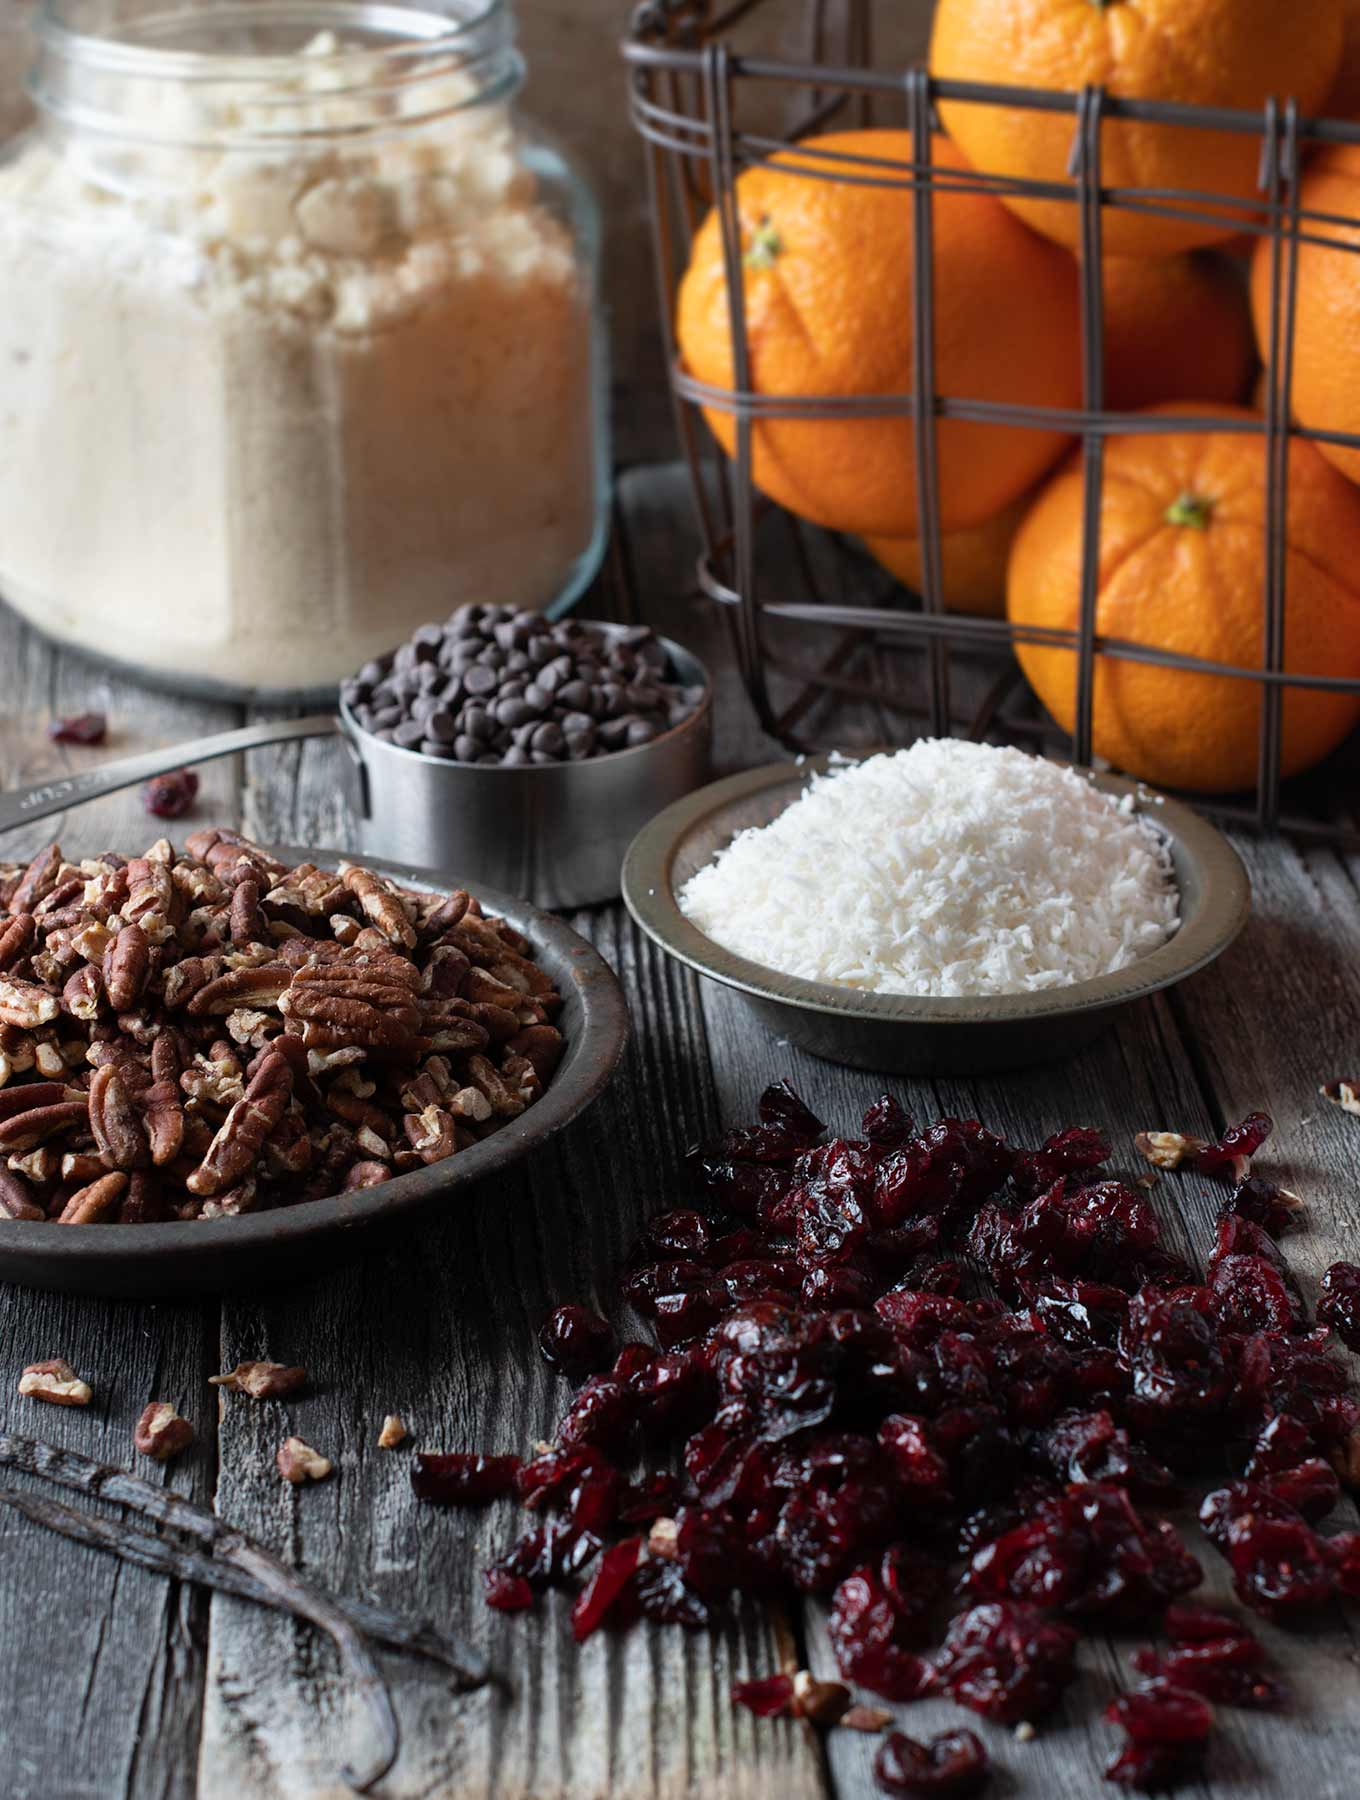 Ingredients for orange cranberry chocolate bars